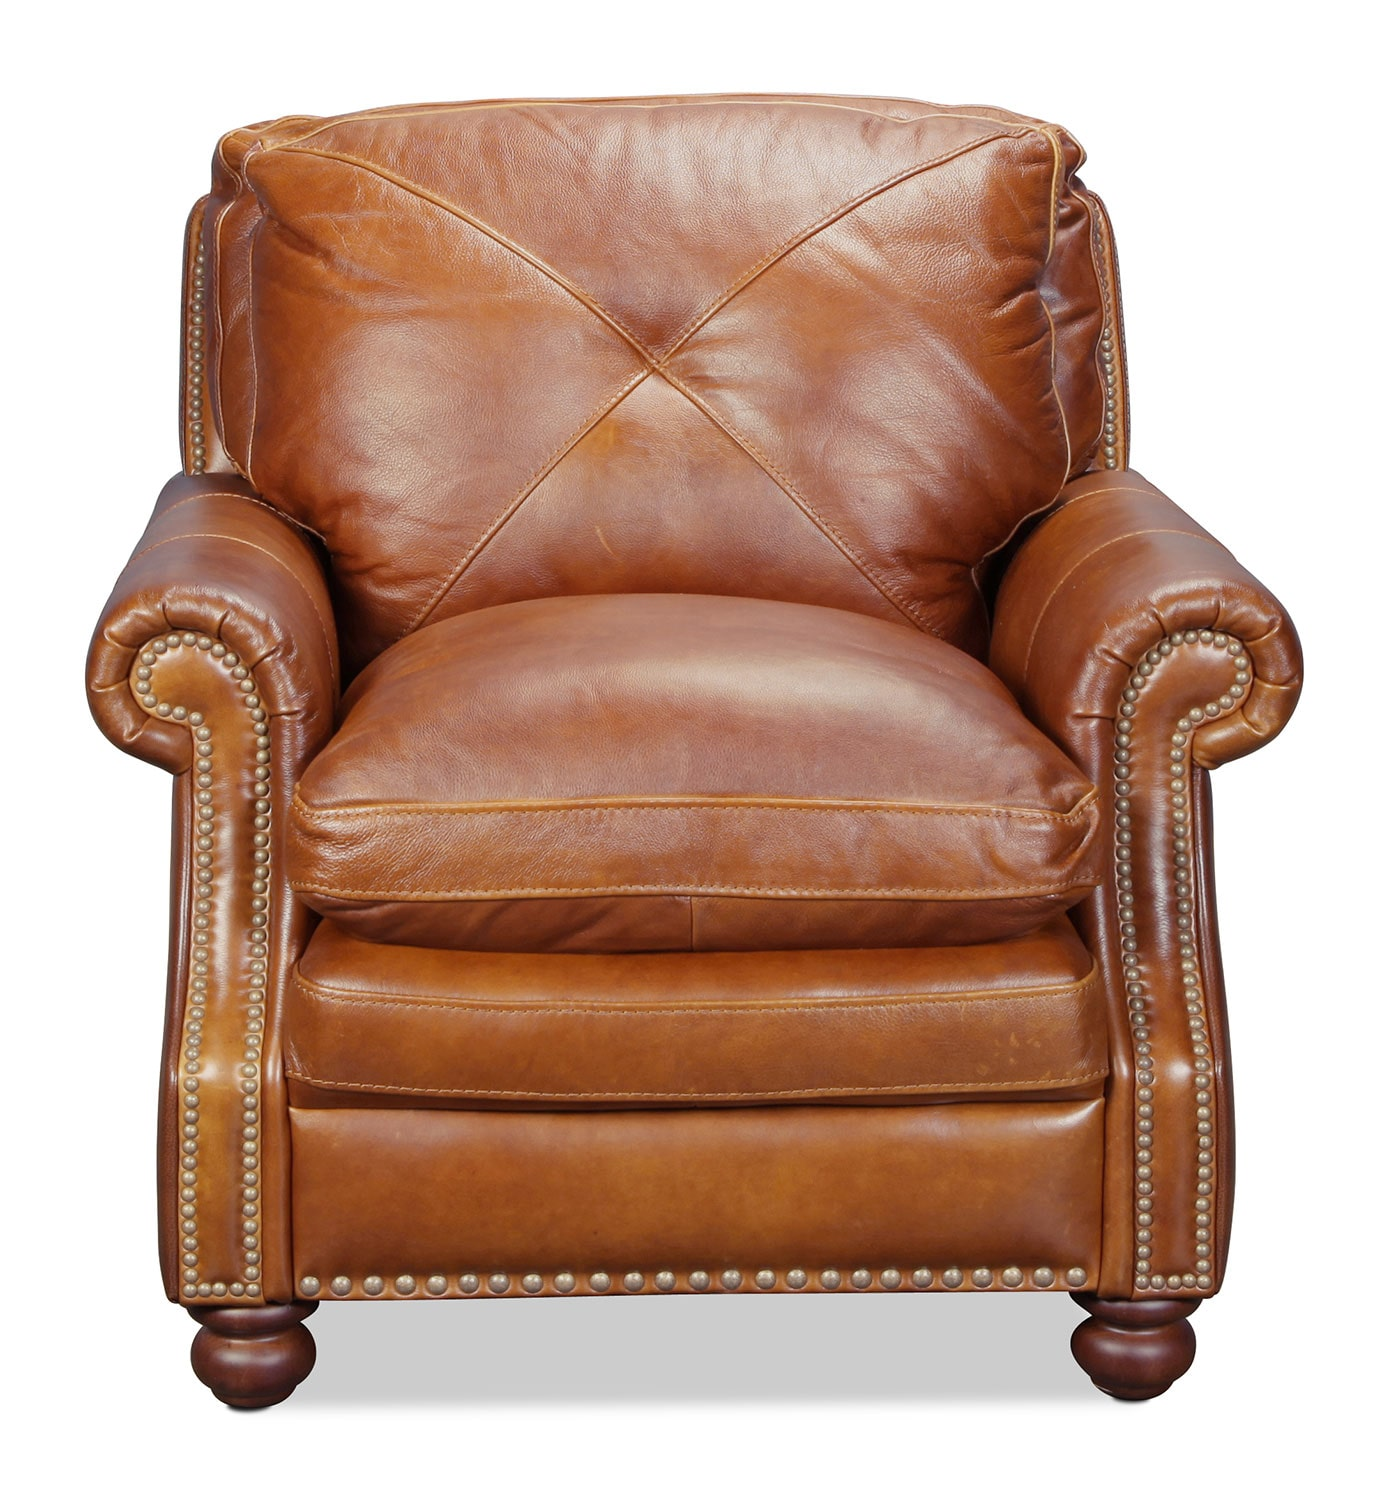 Dunhill Chair - Brown